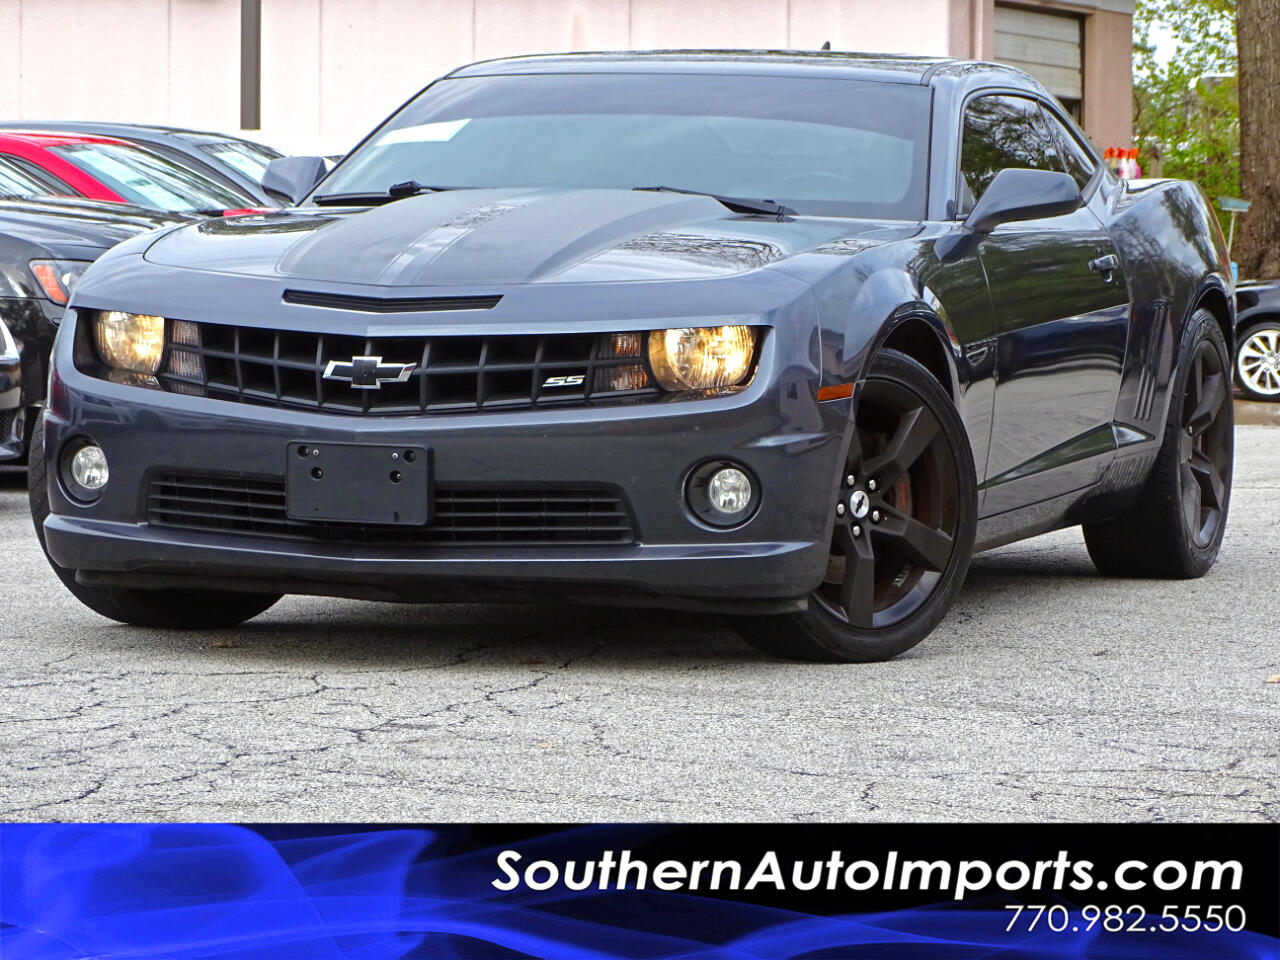 2010 Chevrolet Camaro 2 SS w/Parking Sensors Paddle Shifter